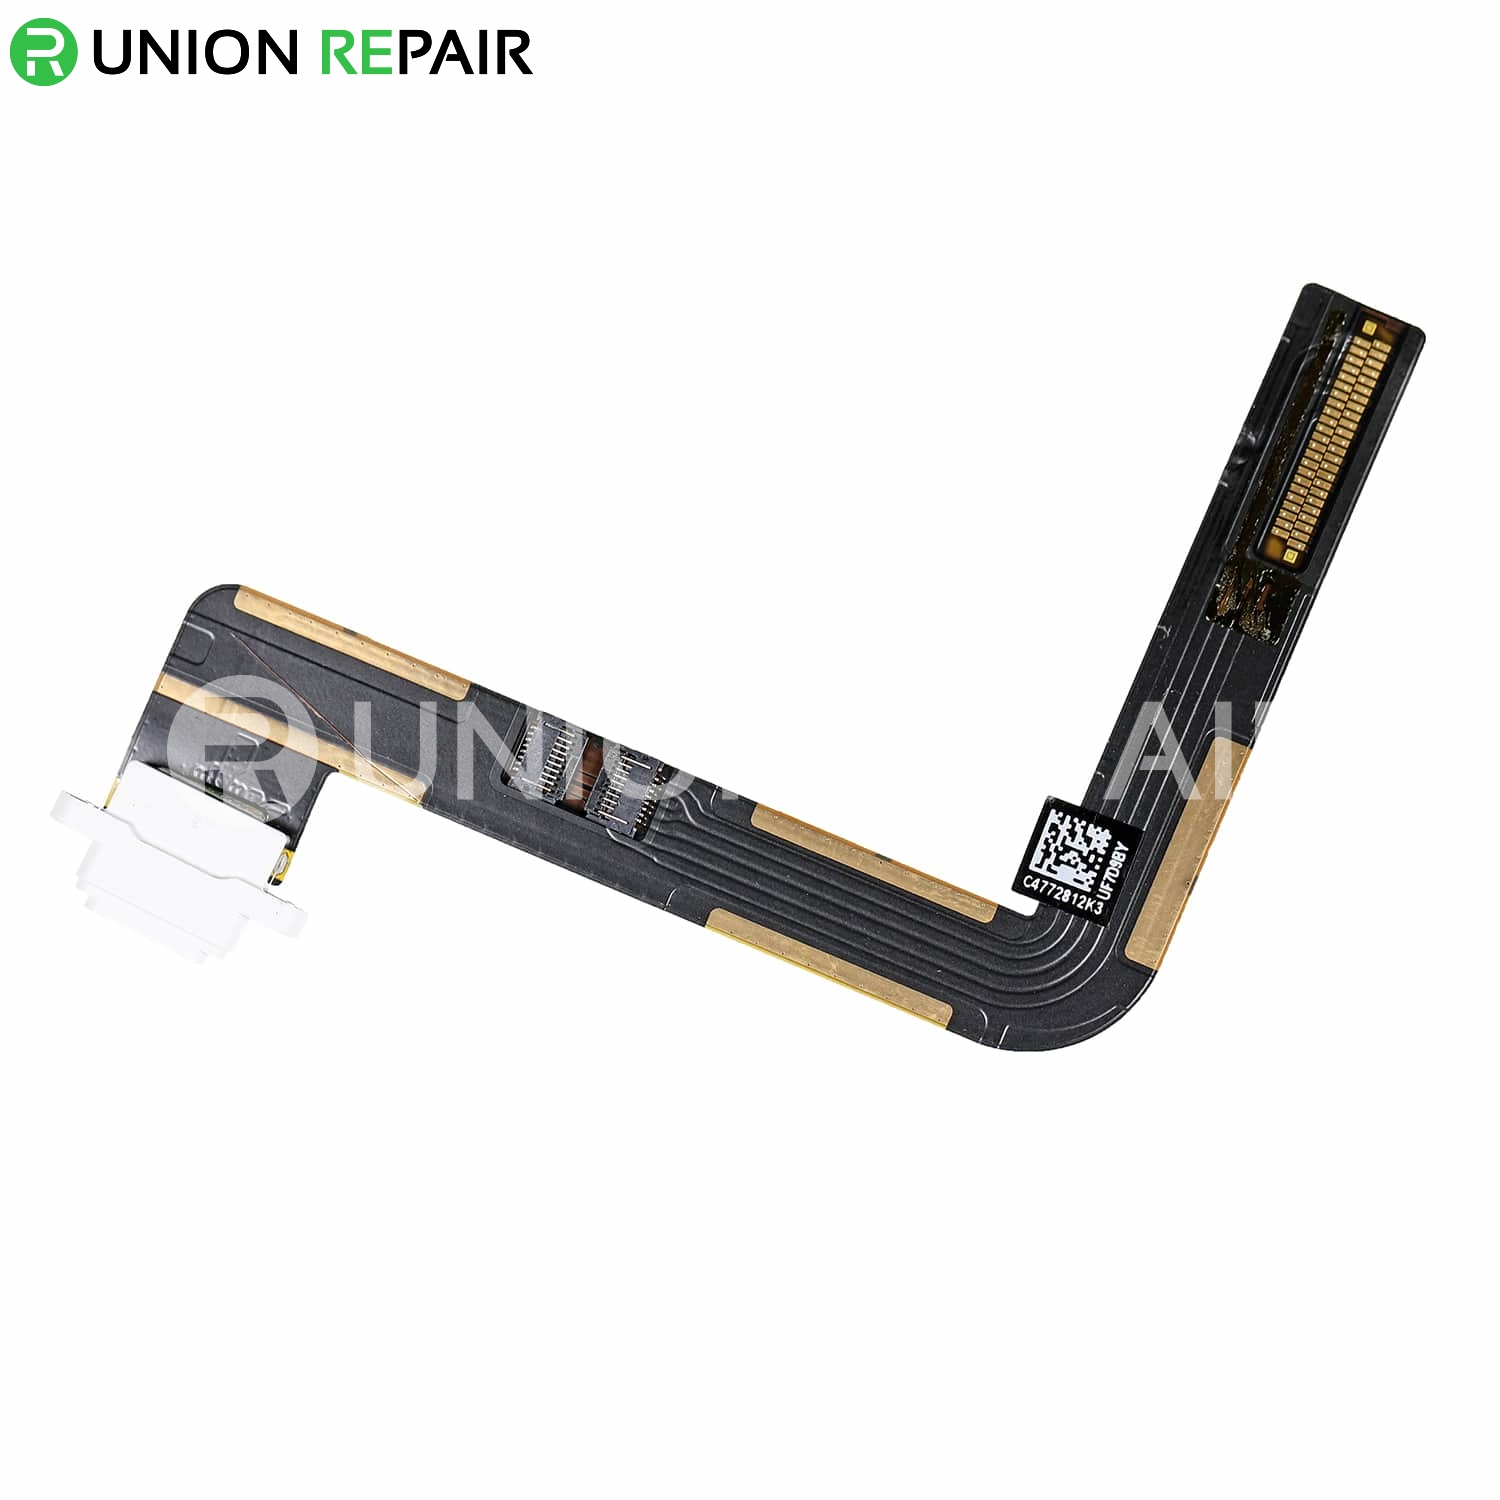 Replacement for iPad 5 Dock Connector Flex Cable - White